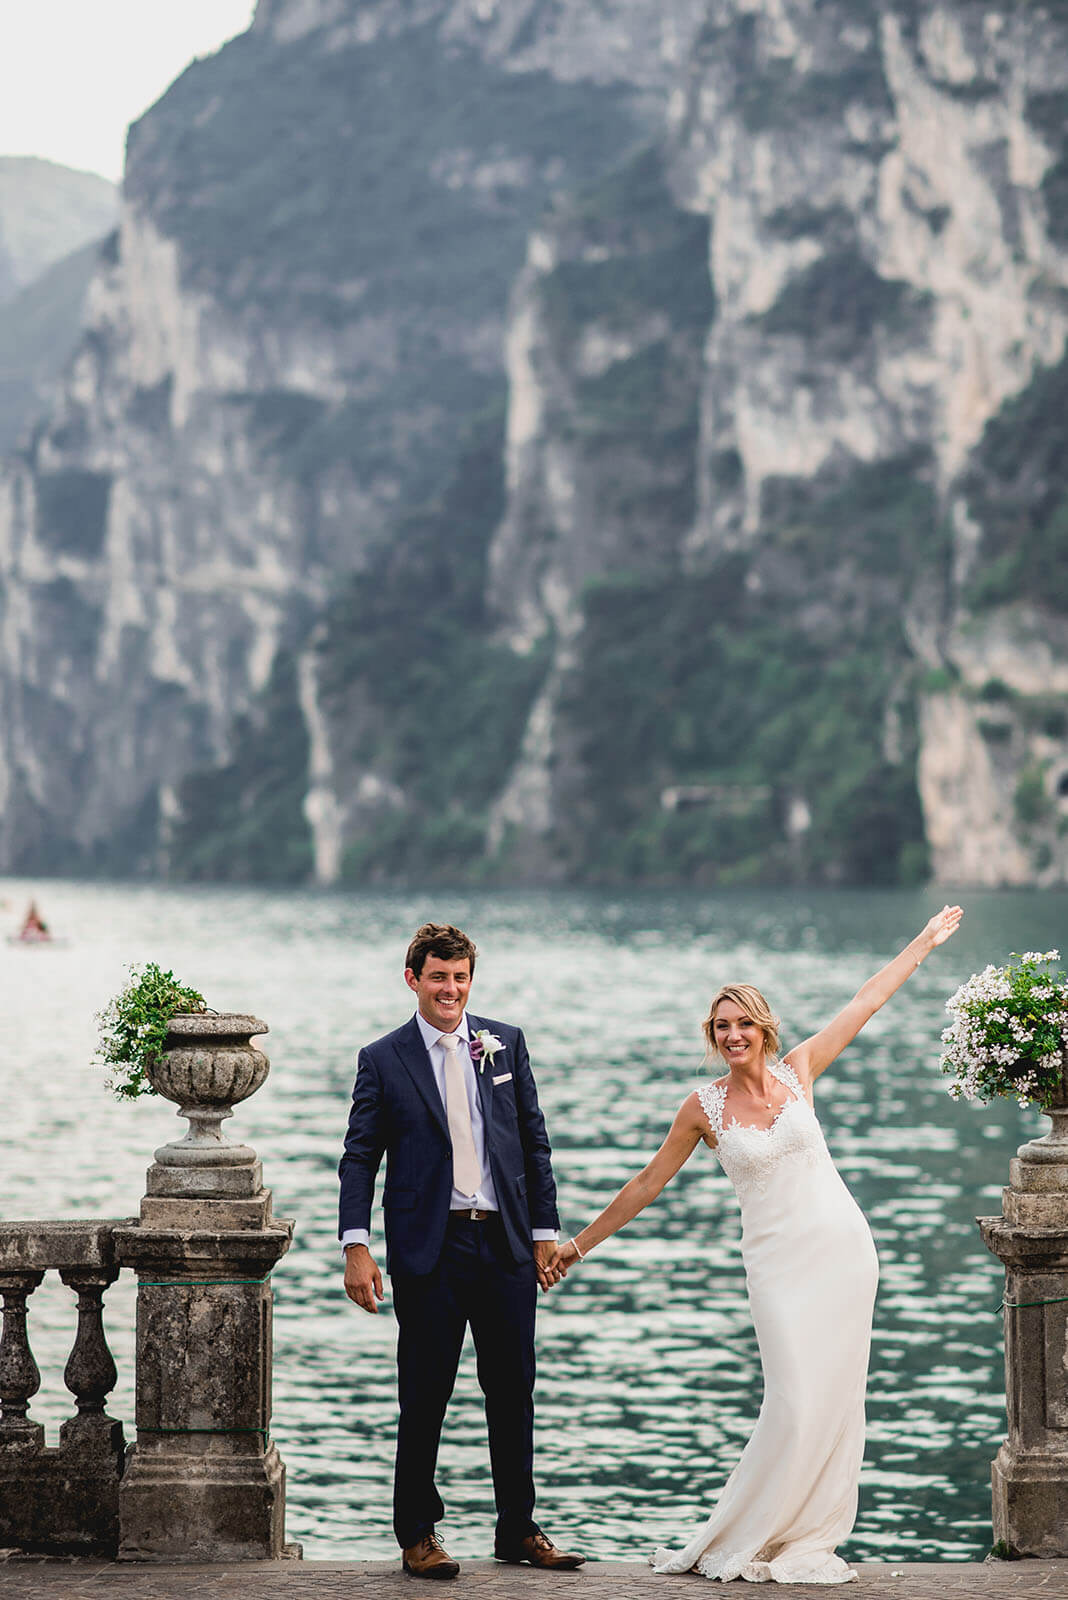 married-in-italy